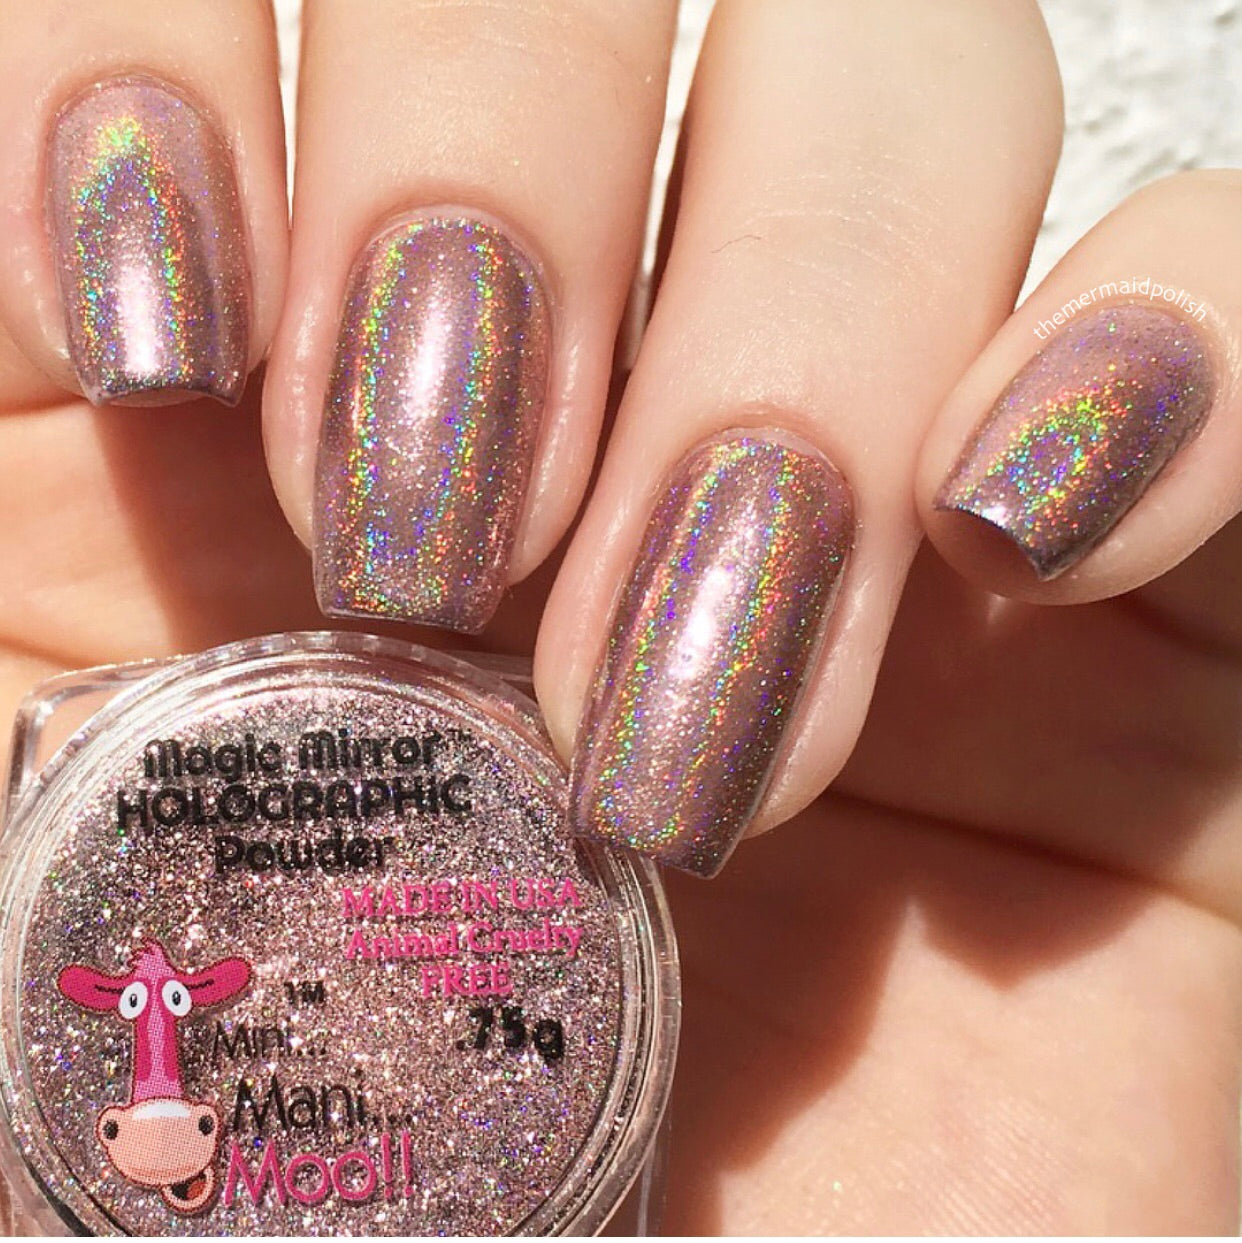 Magic mirror PINK HOLOGRAPHIC powder